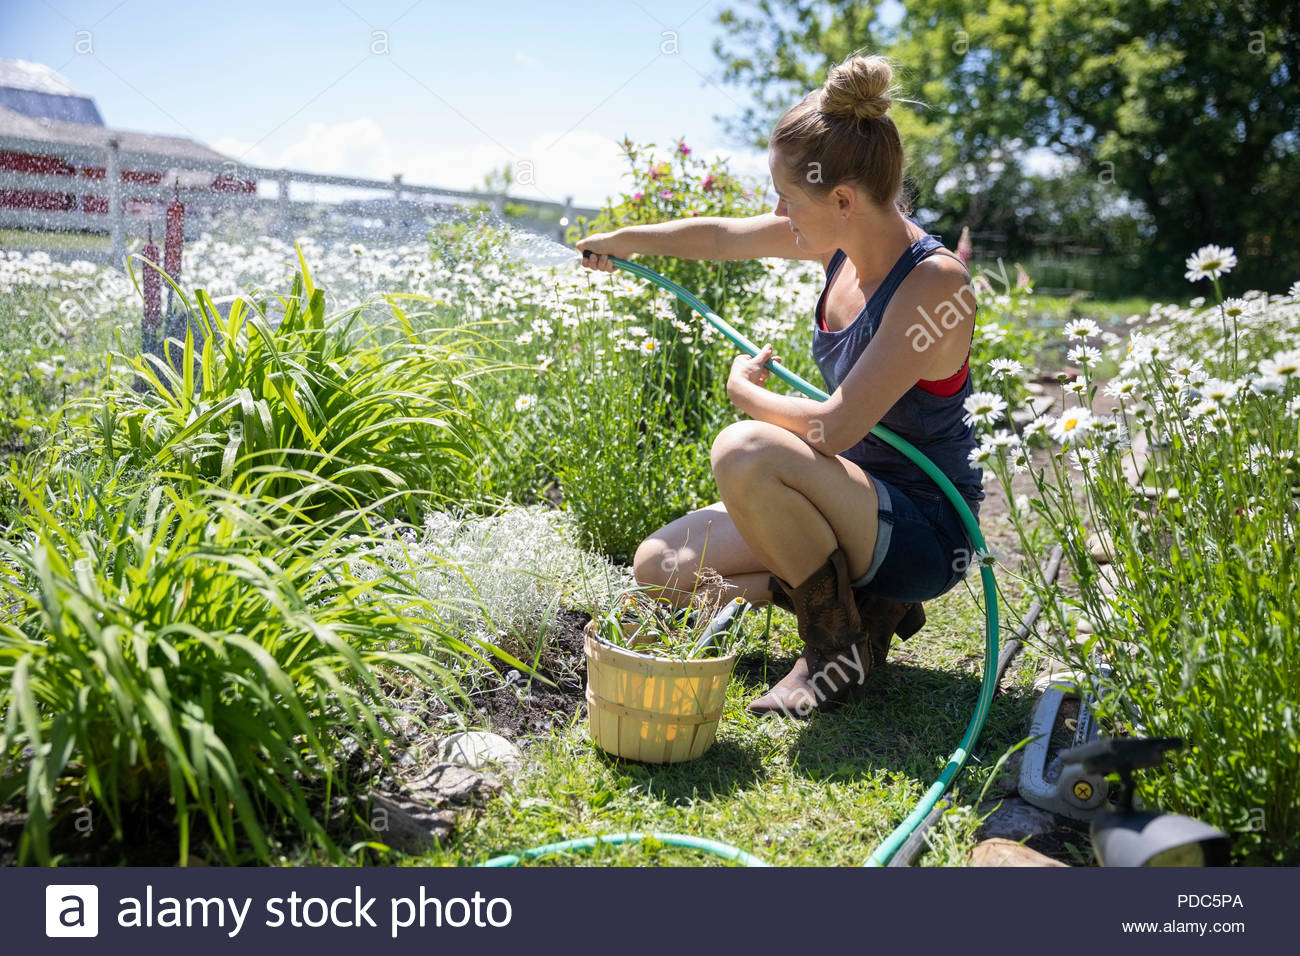 Woman gardening, watering flowers and plants in sunny rural garden - Stock Image